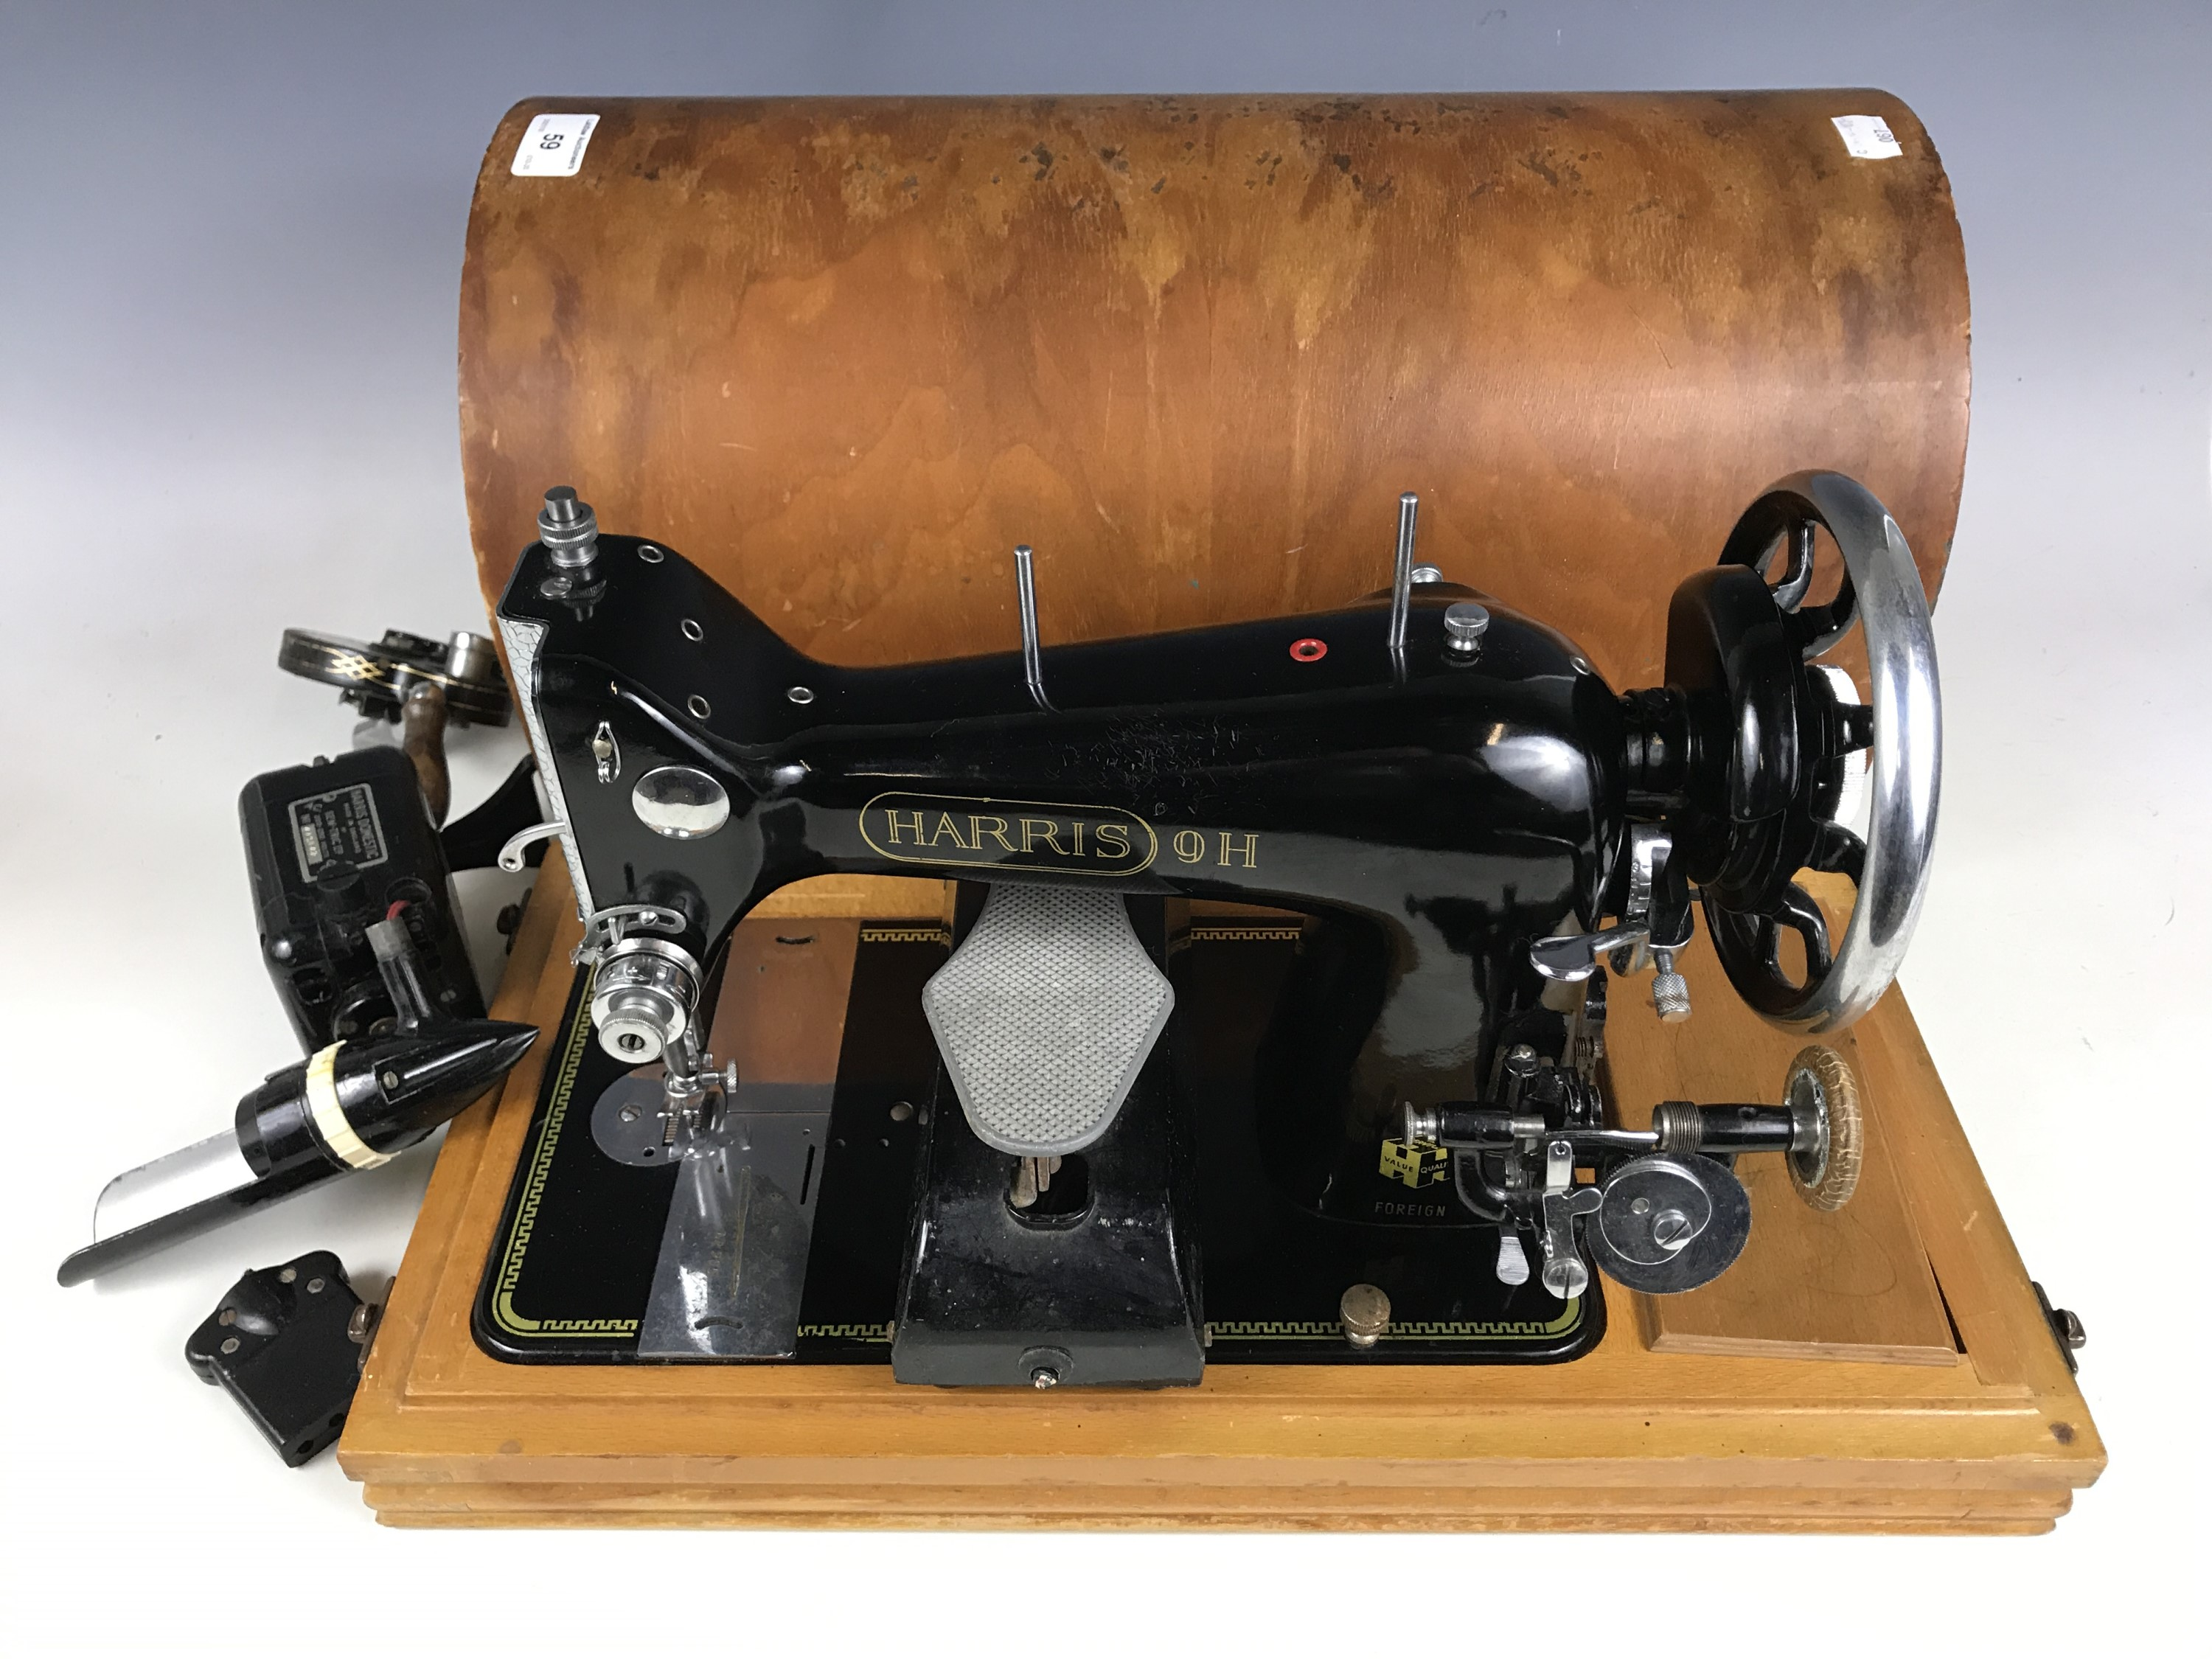 Lot 59 - A Harris 9H sewing machine with accessories